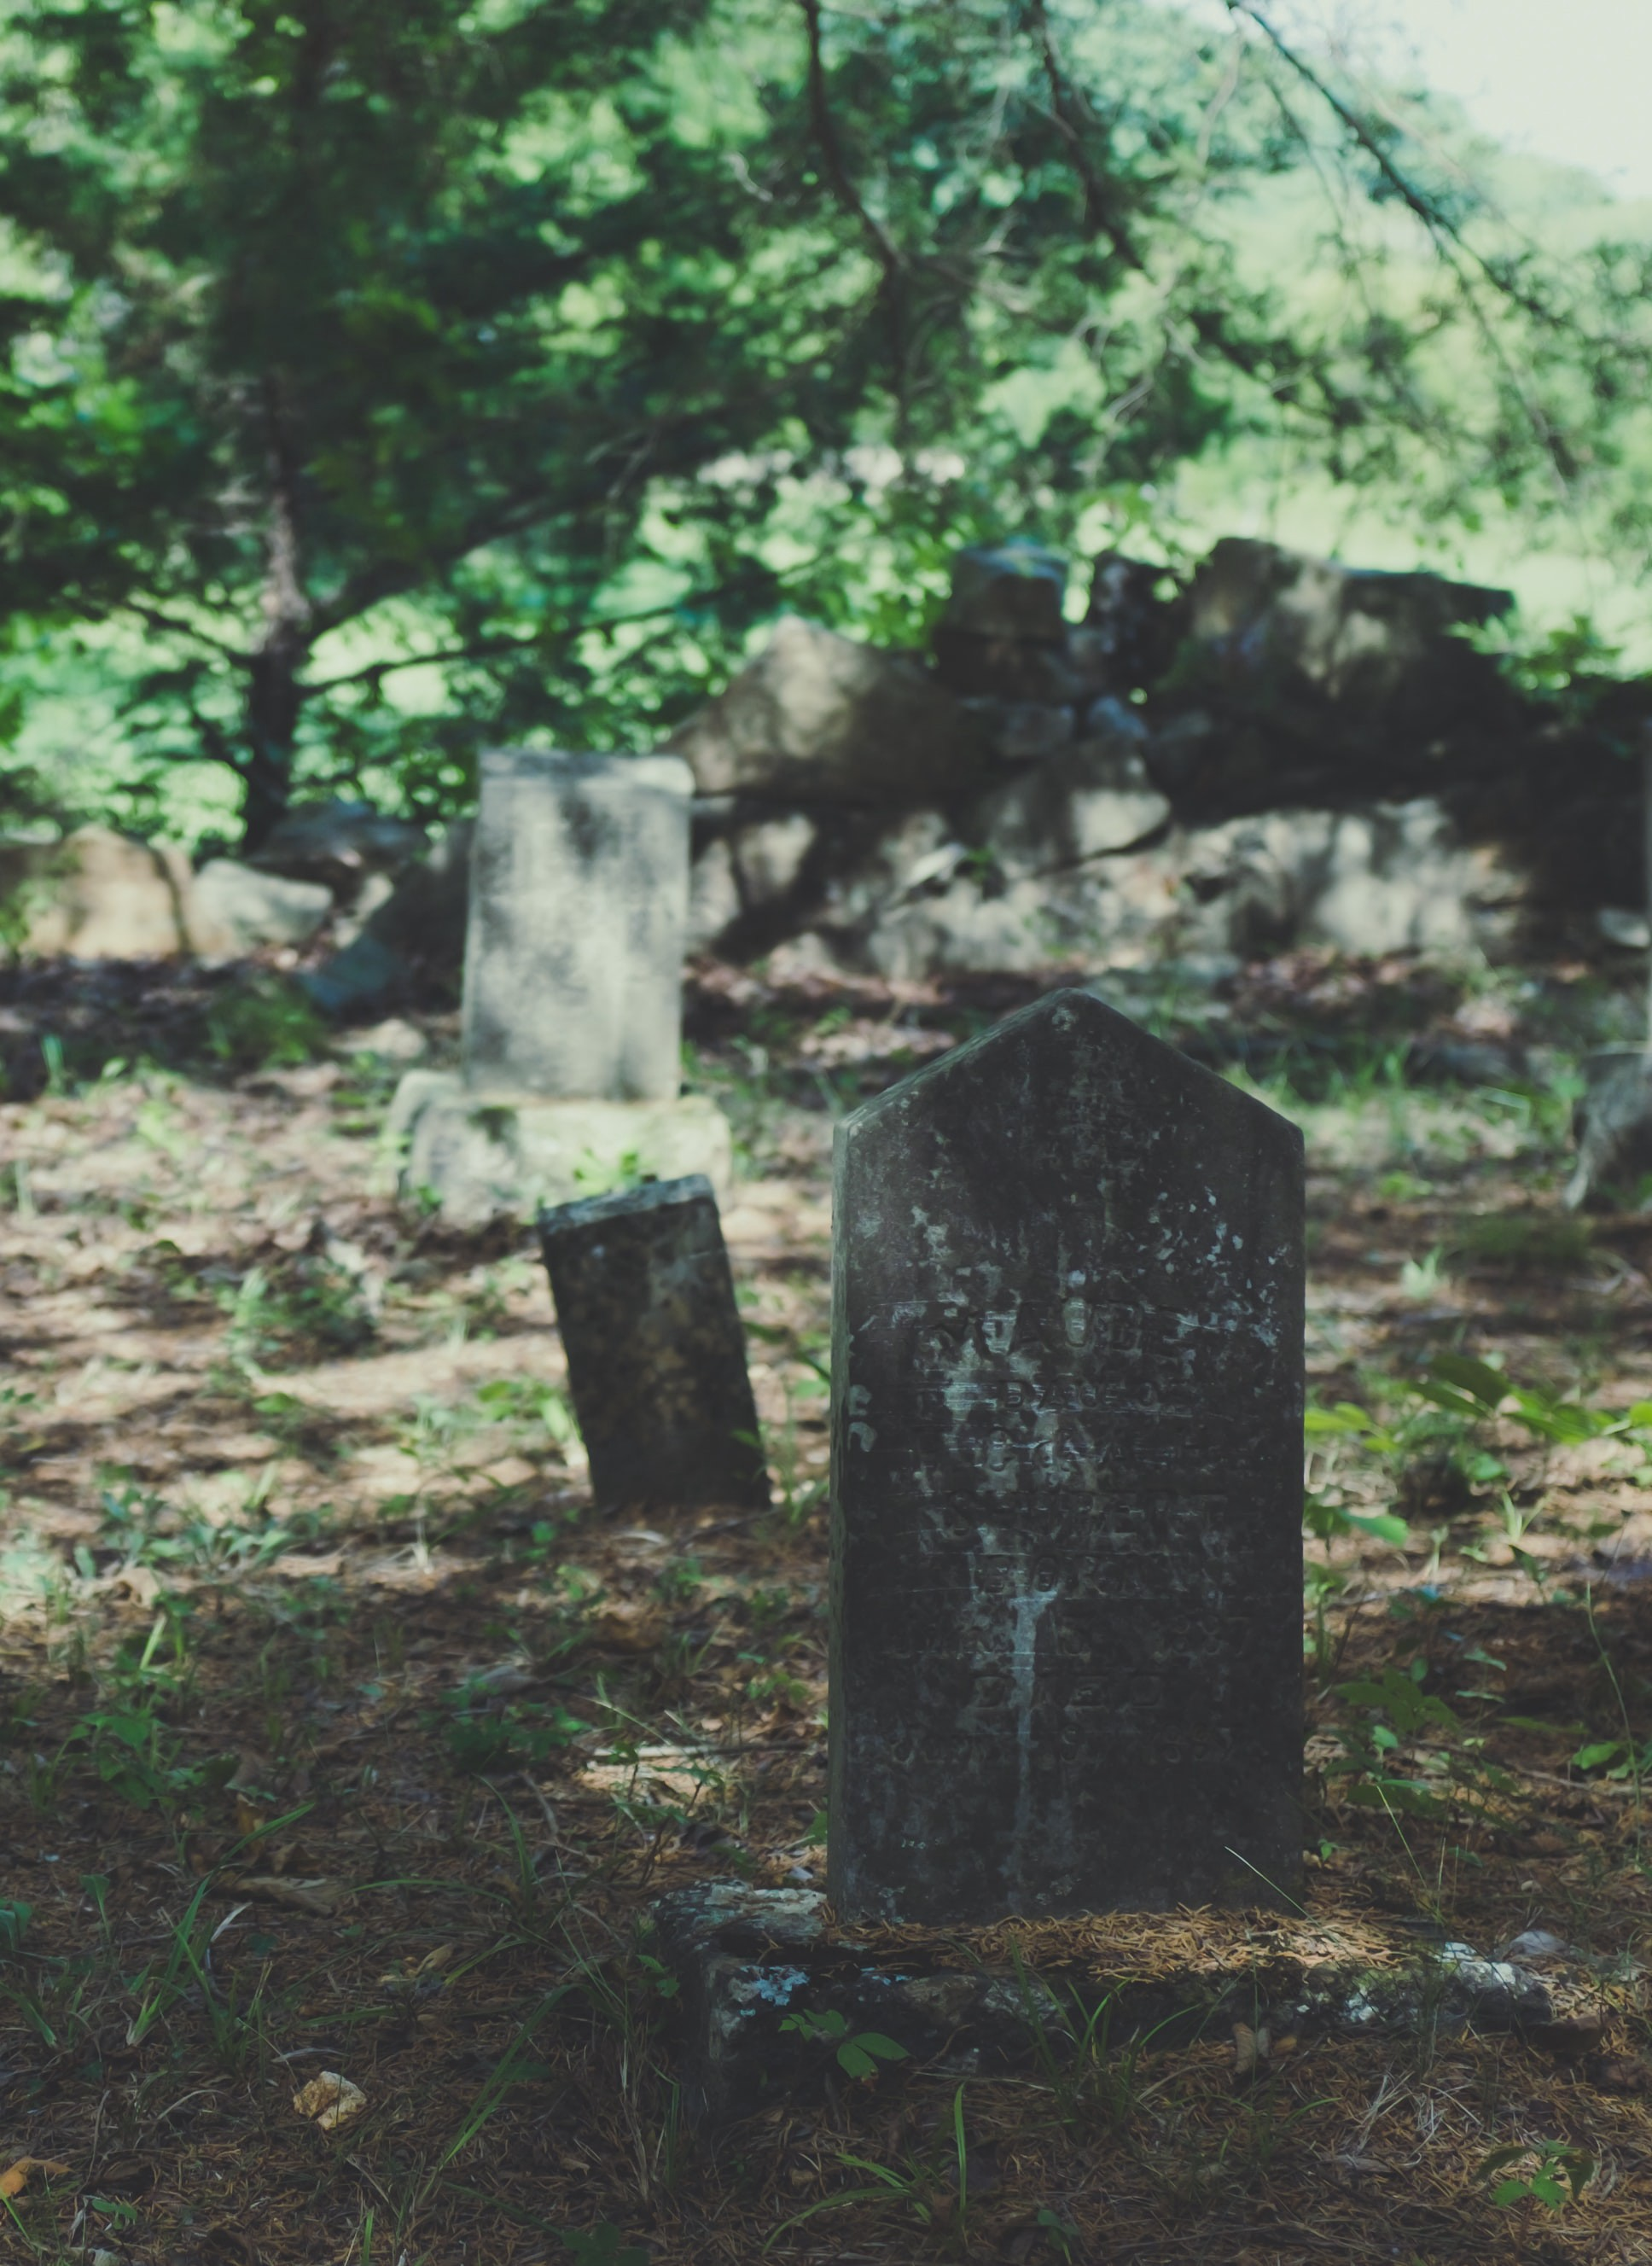 Picture of several very weathered gravestones in a cemetery in the woods.